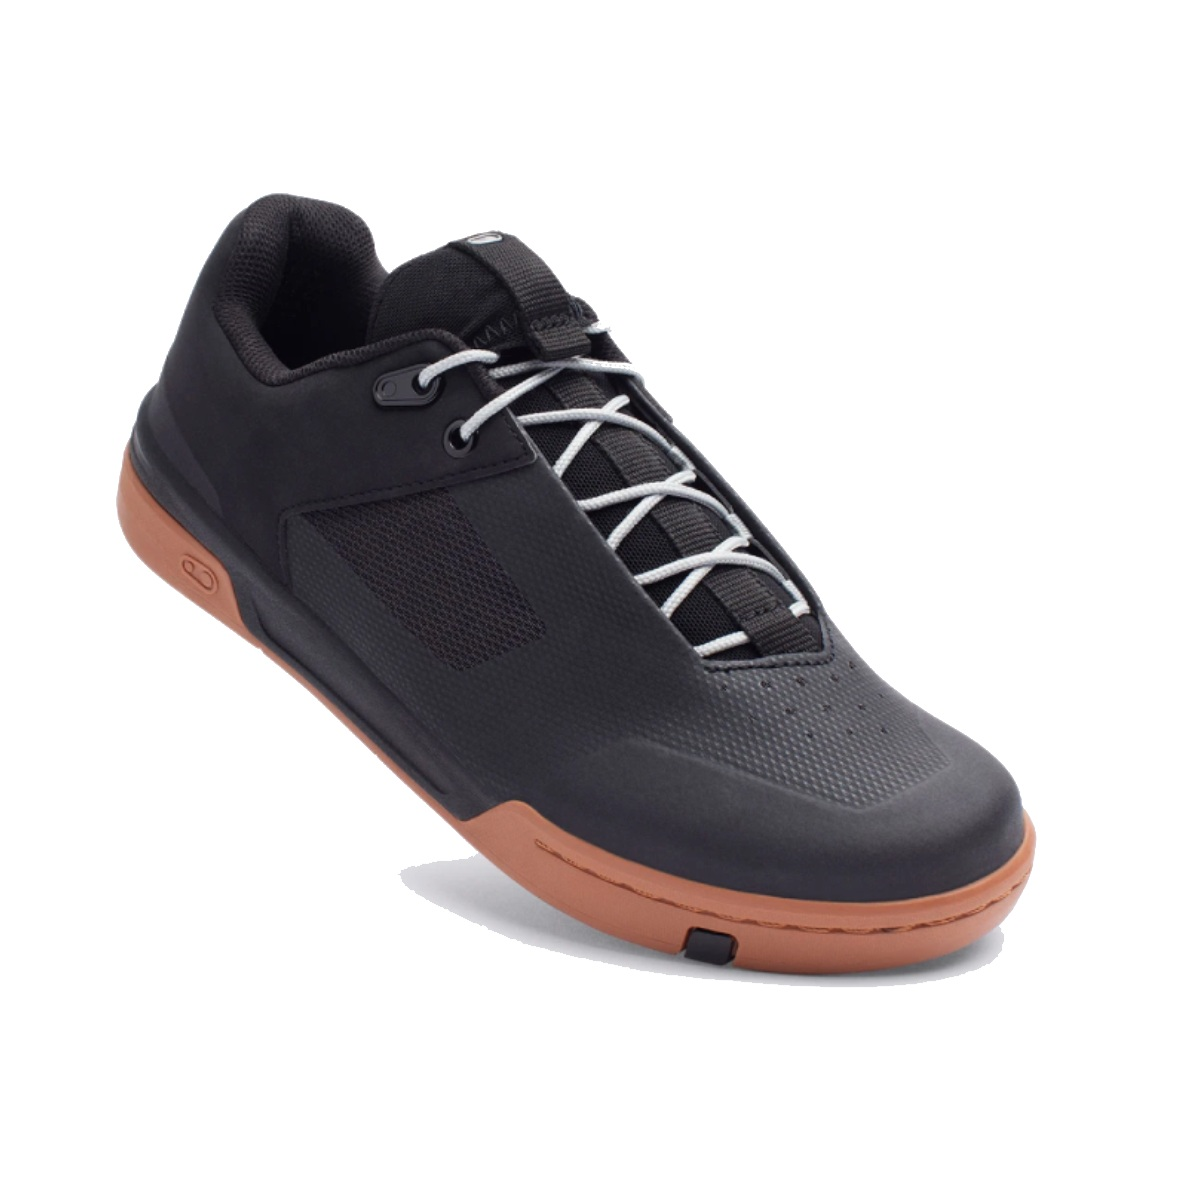 CHAUSSURES CRANK BROTHERS STAMP LACE FLAT